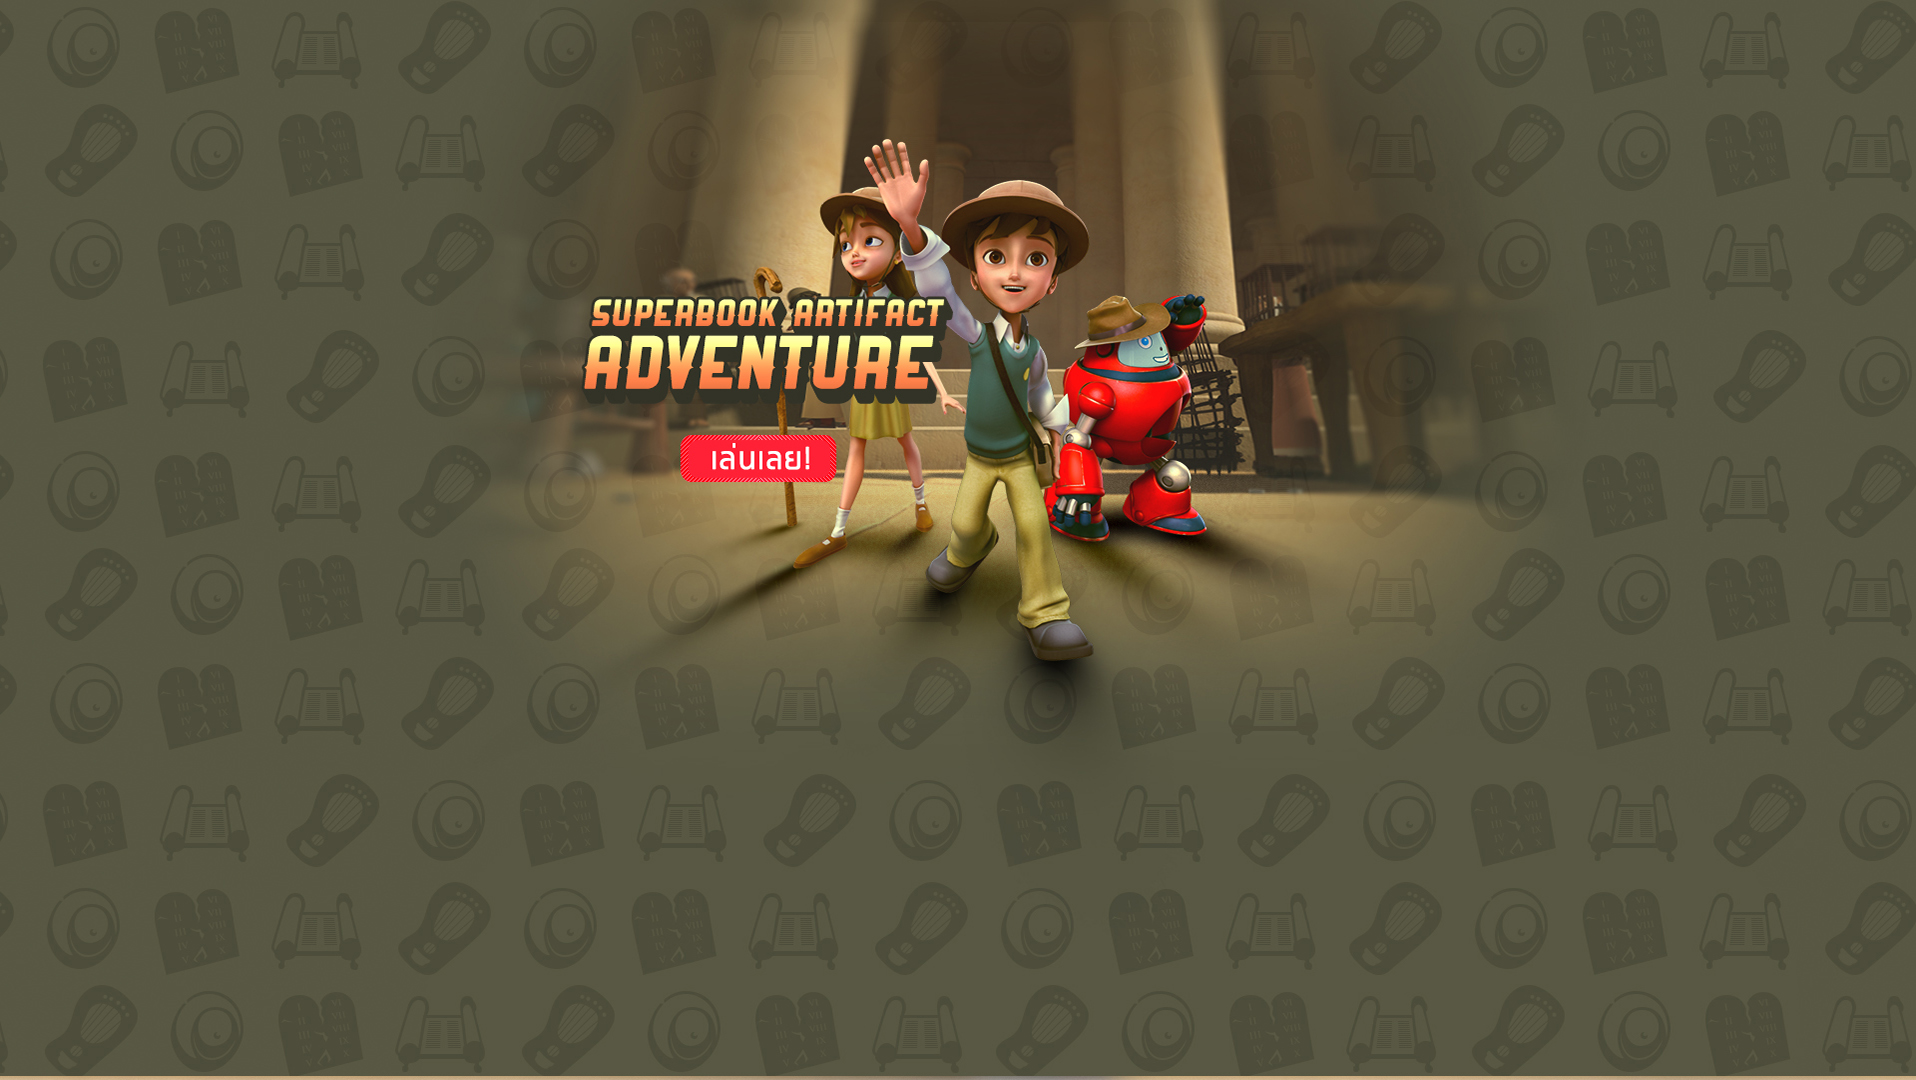 <h2>Superbook Artifact Adventure</h2>